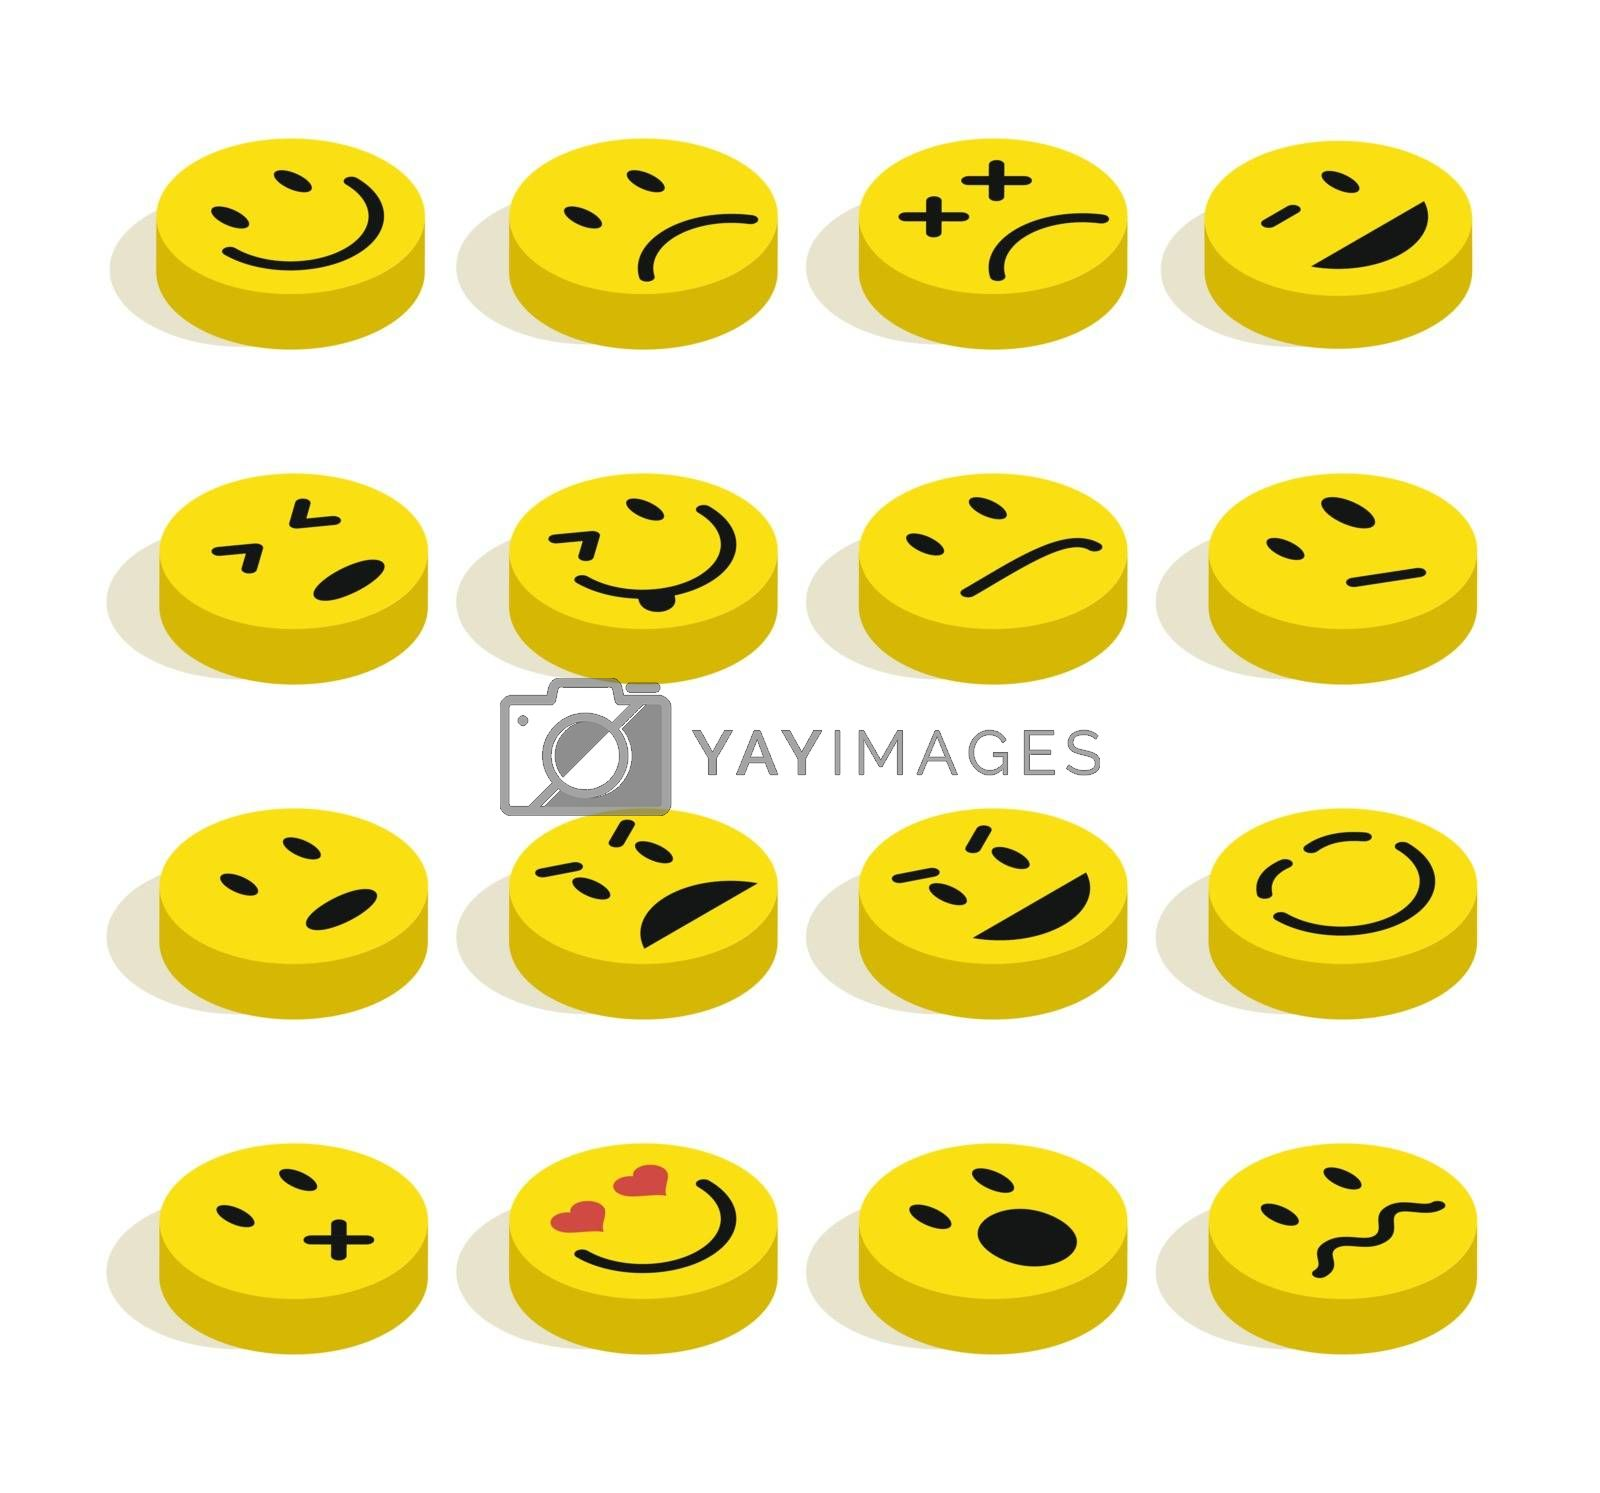 Royalty free image of Flat isometric Emoticons set illustration by cienpies